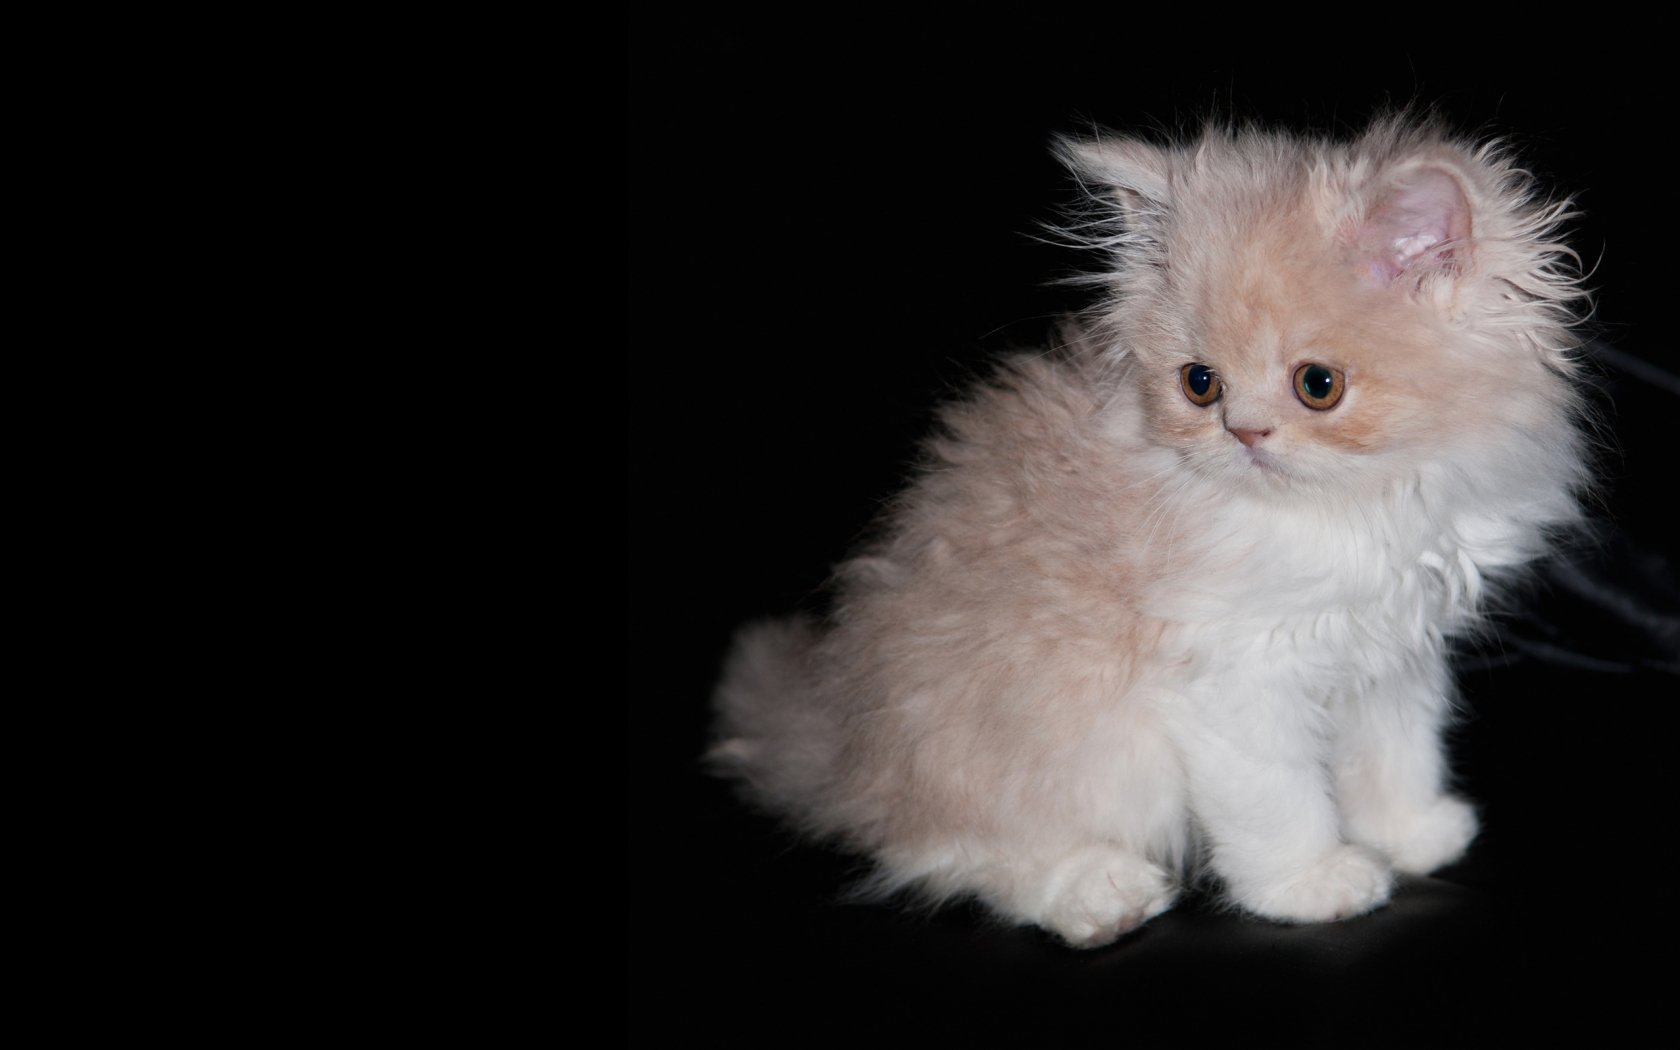 Fluffy kitten on a black background